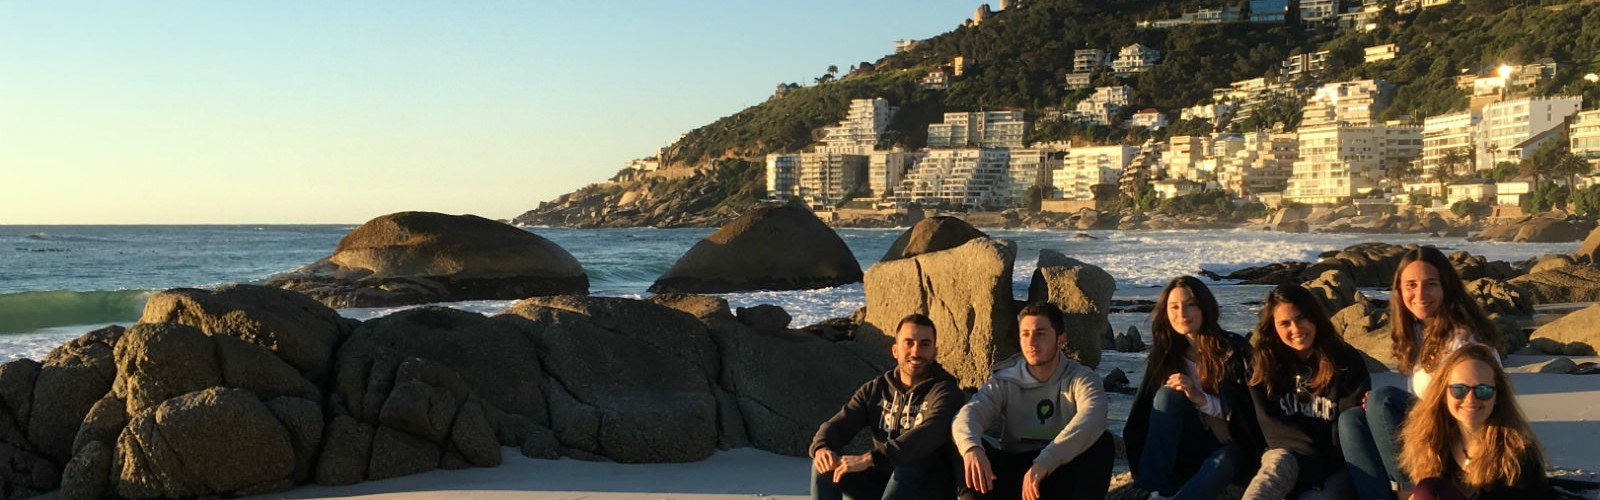 7 Questions to a Fundraising Intern in Cape Town